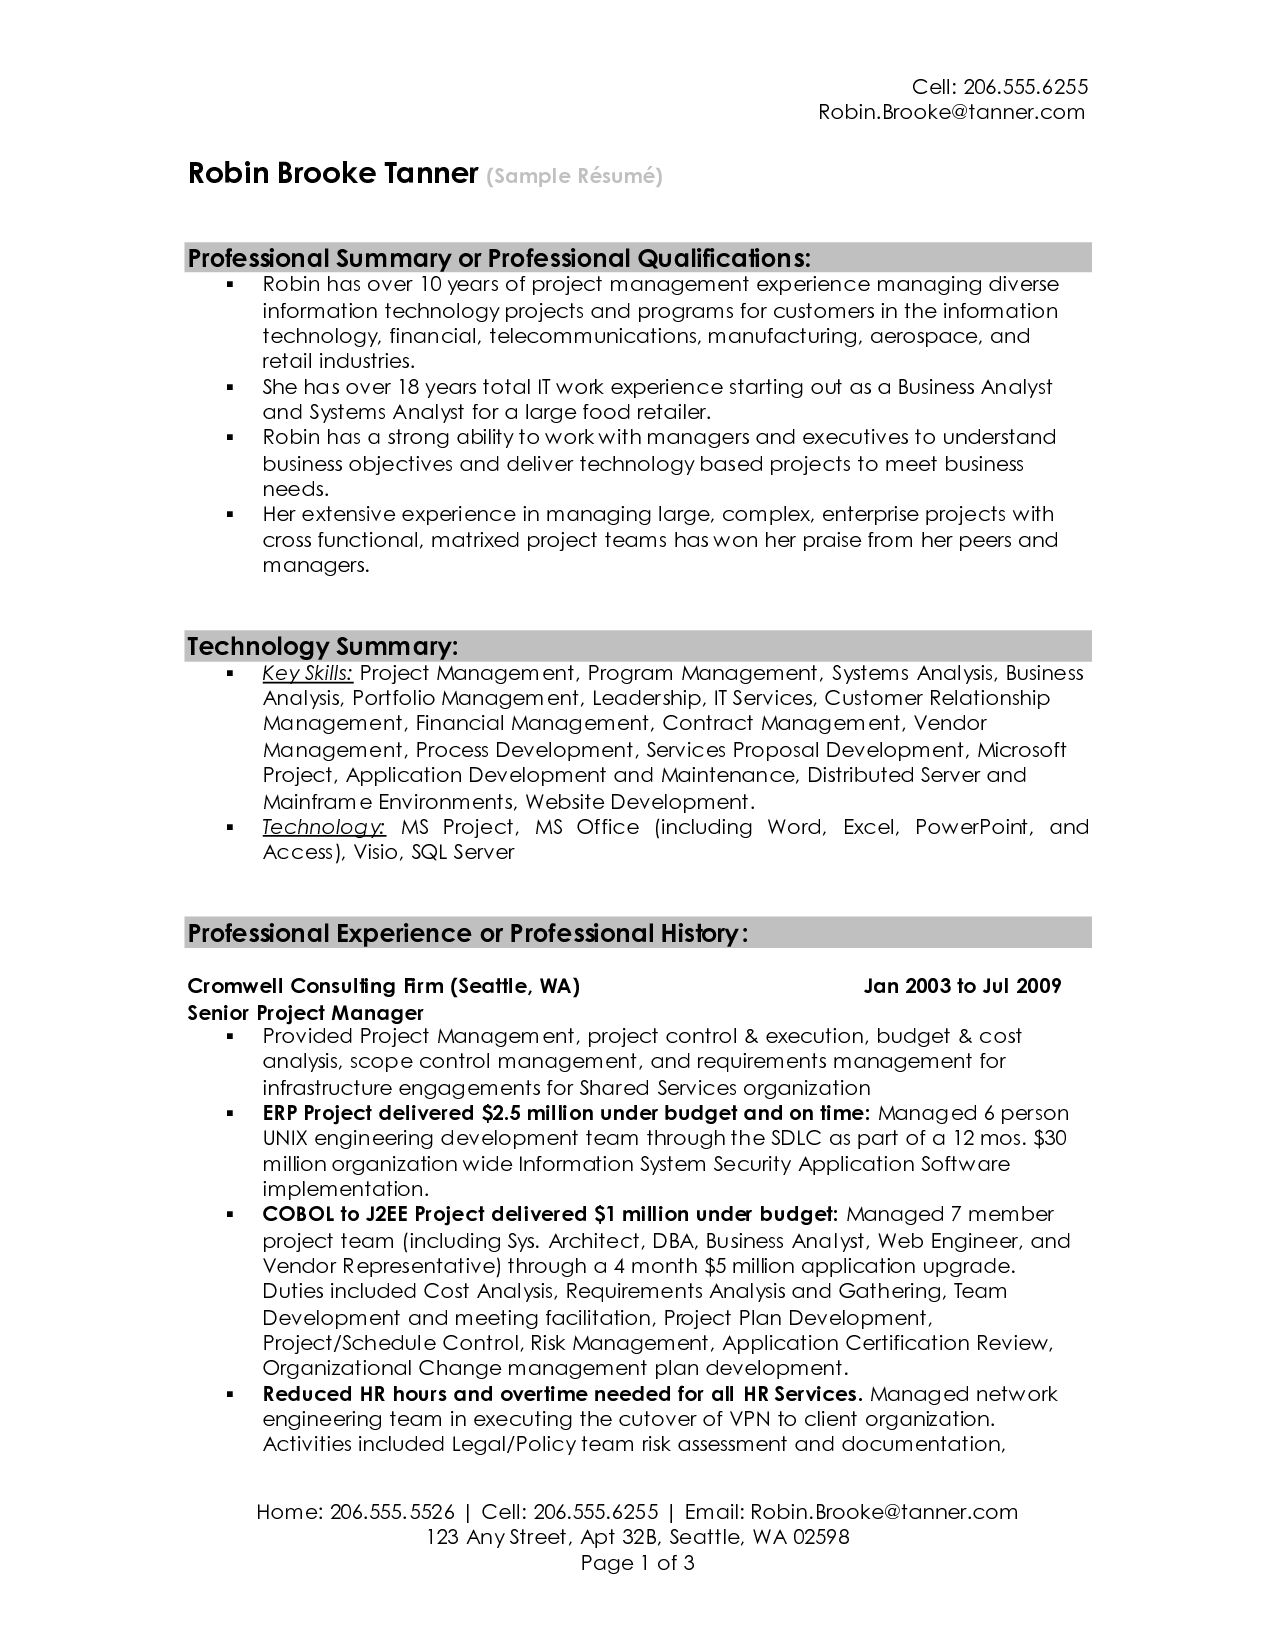 Professional Summary Resume Examples Professional Resume Summary